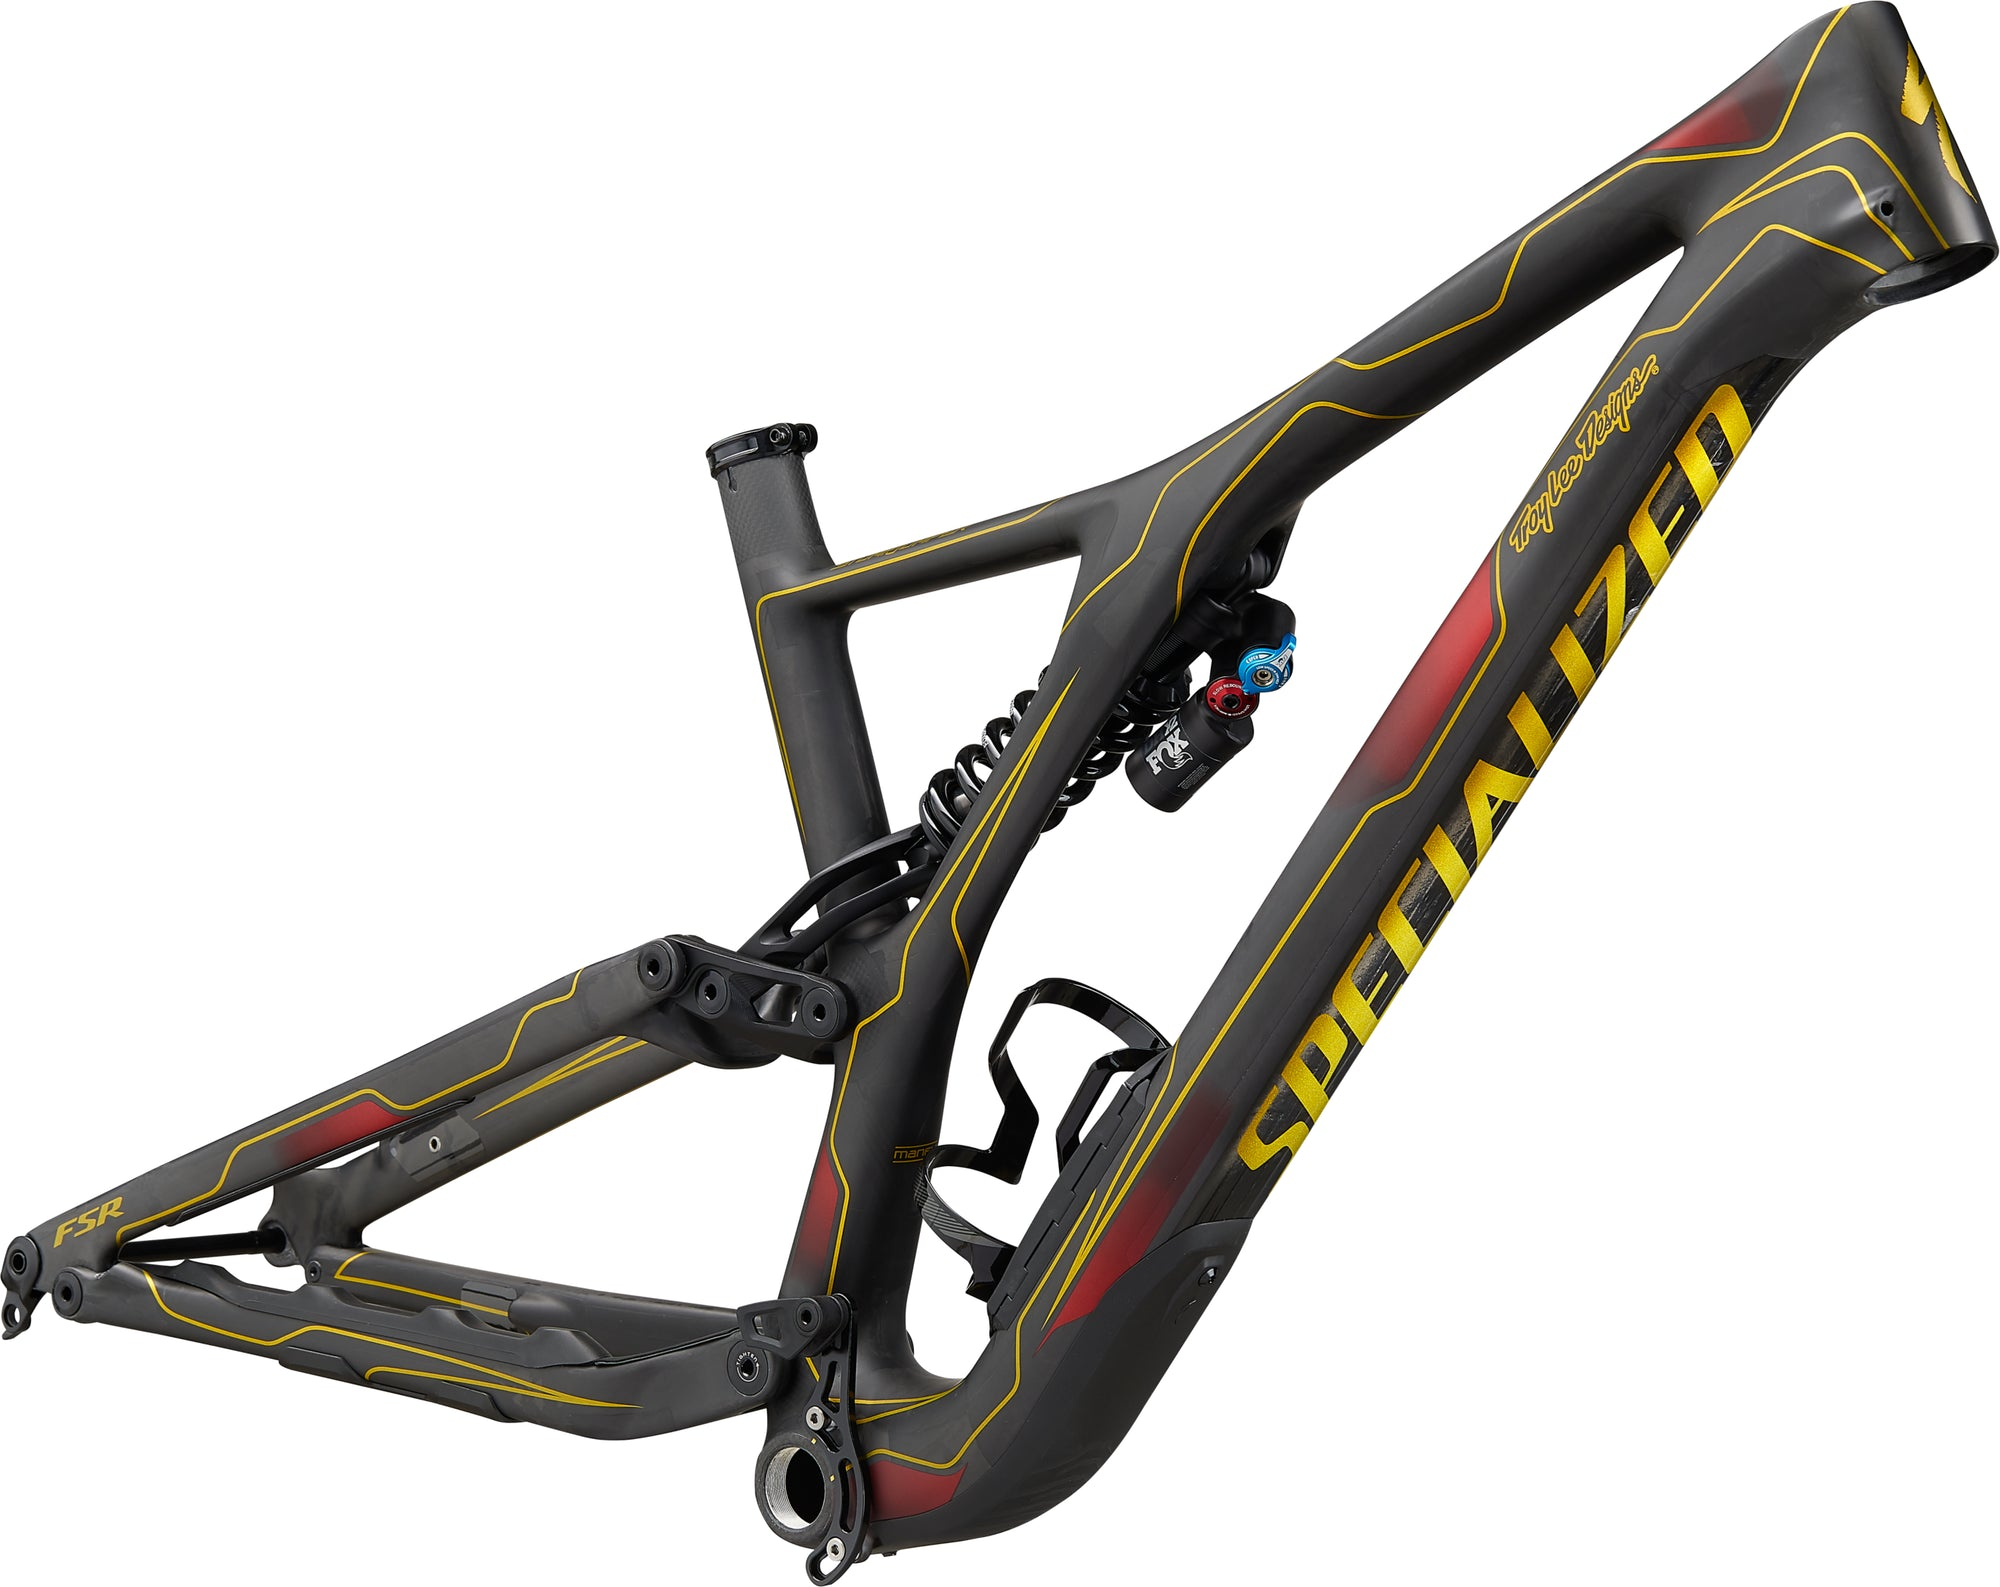 Stumpjumper Troy Lee Designs 29 Frameset - Limited-Edition